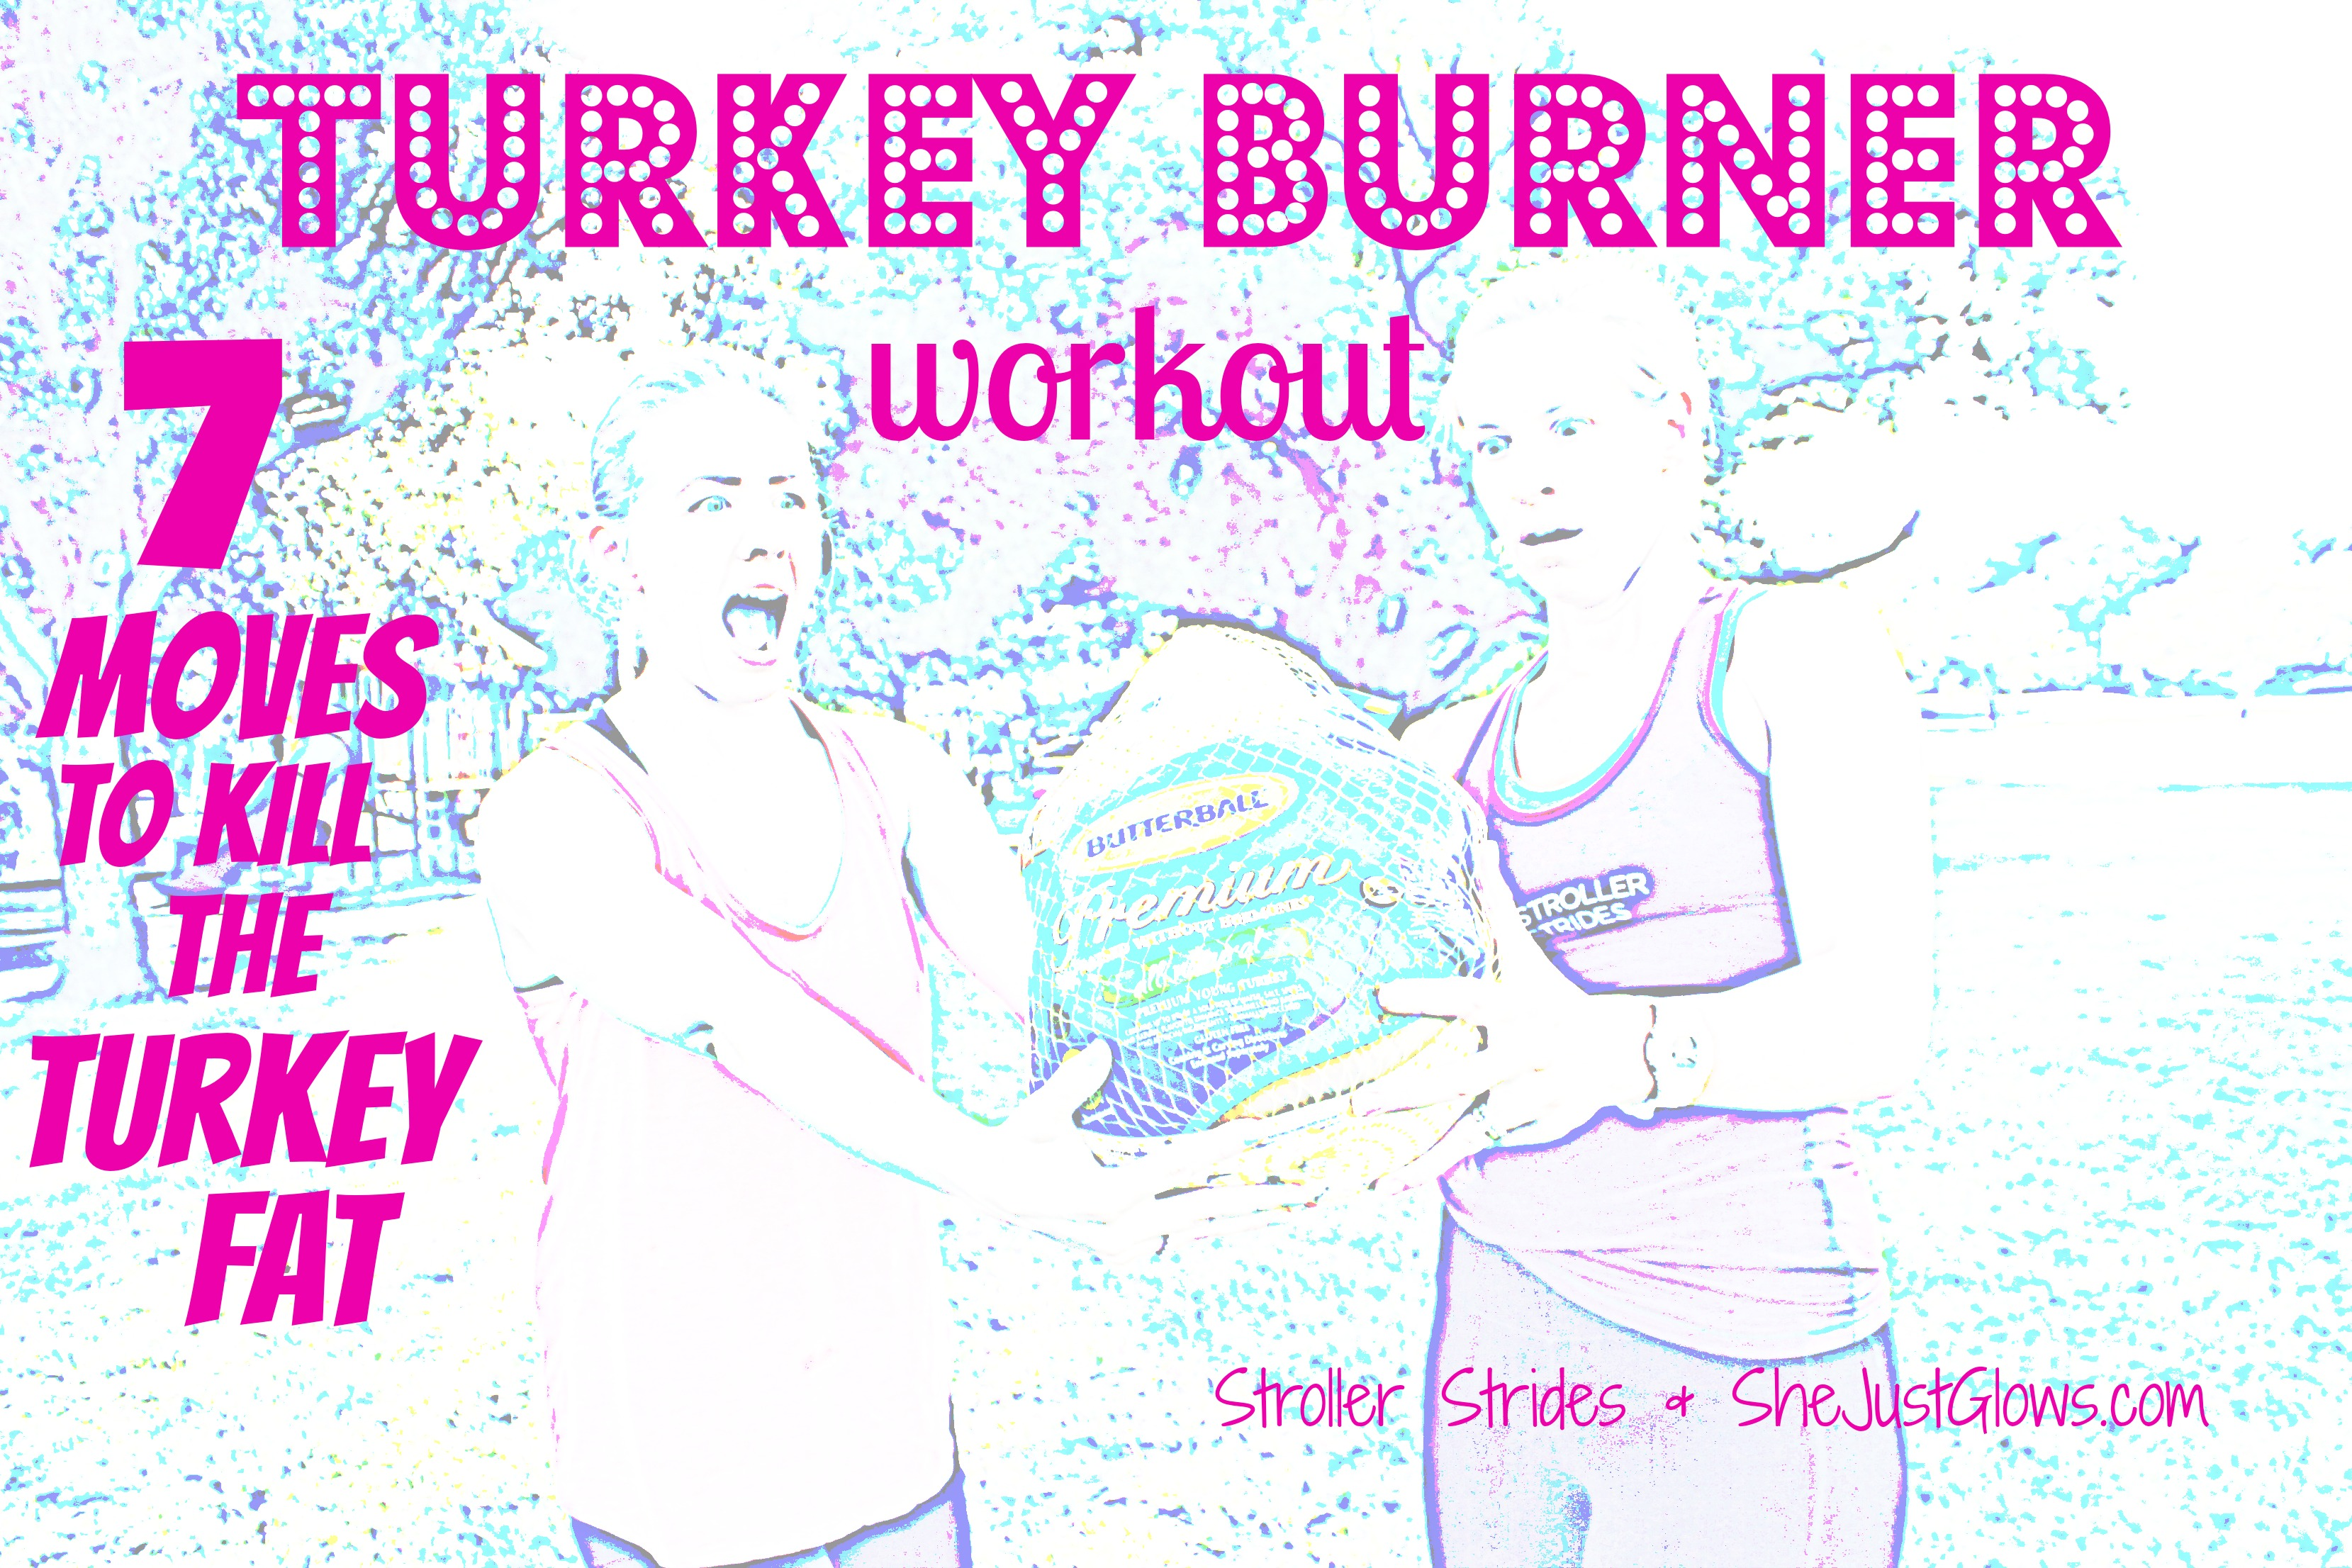 Turkey Burner Workout SheJustGlows.com